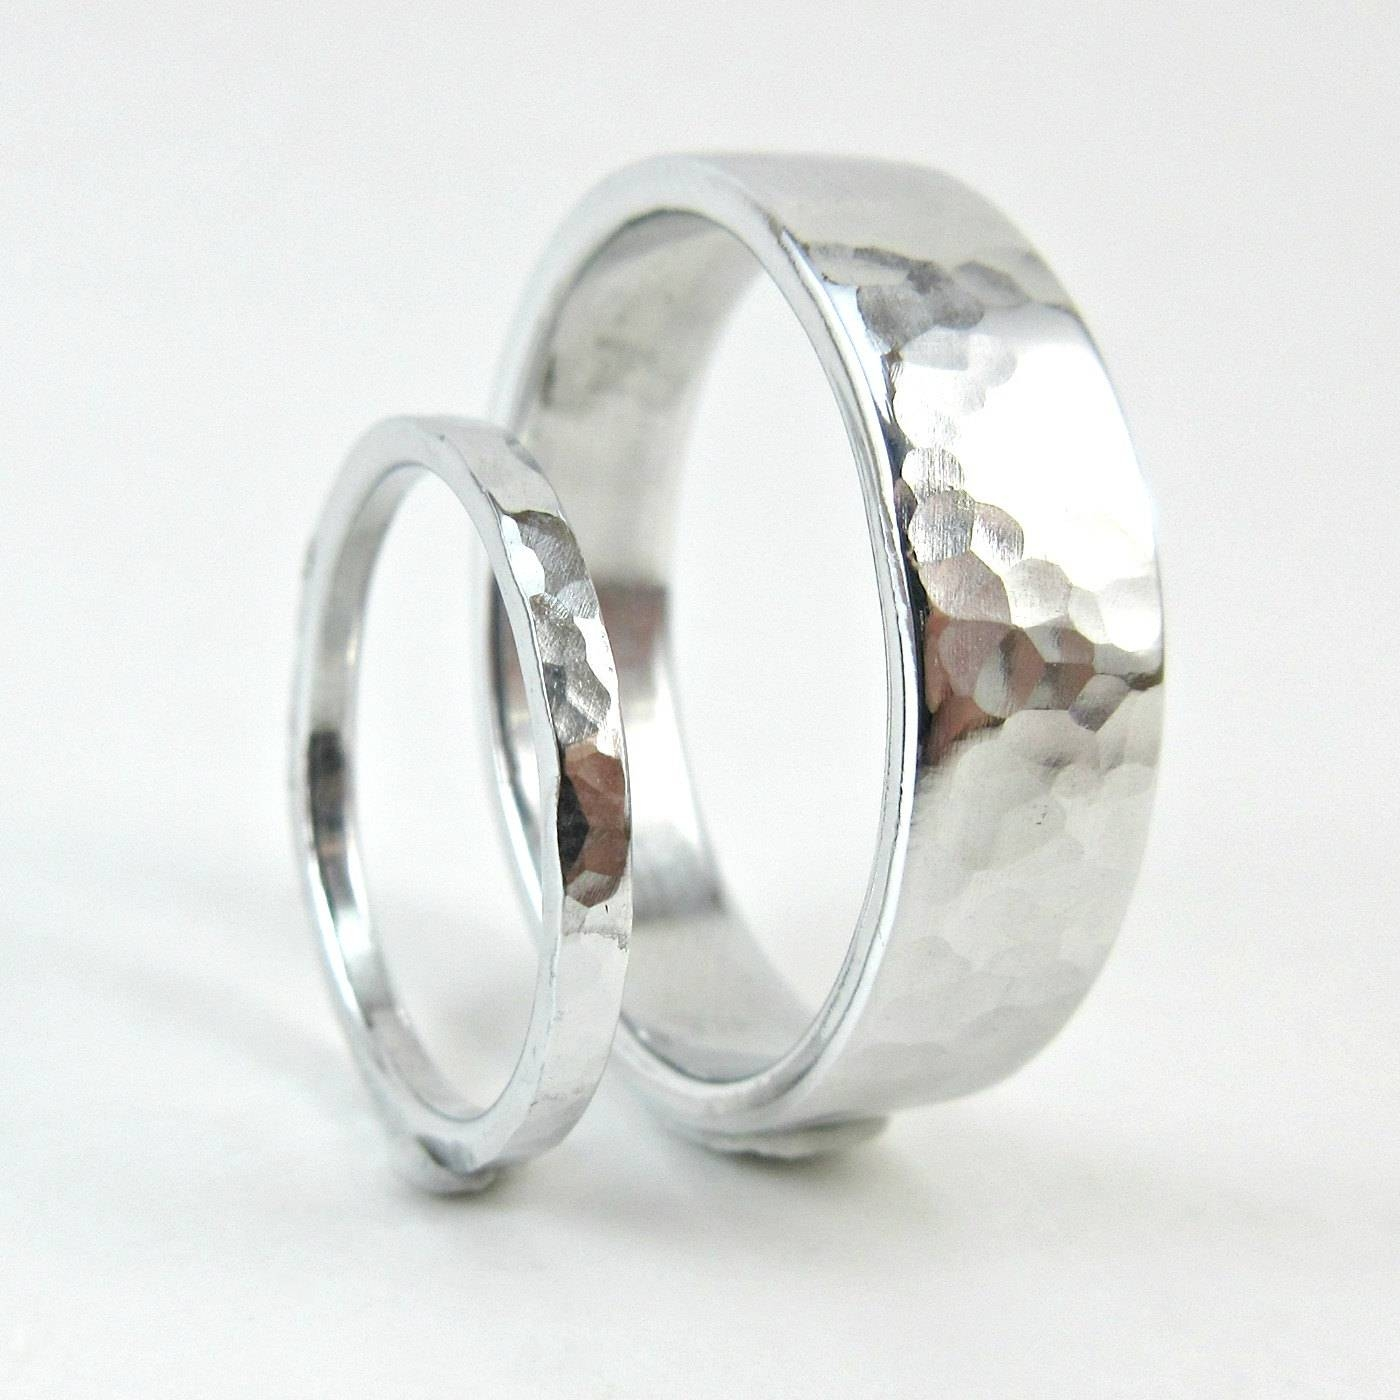 Hammered Aluminum Ring Set 10 Year Anniversary Bands His And Within Most Recent Couples Anniversary Rings (Gallery 3 of 25)